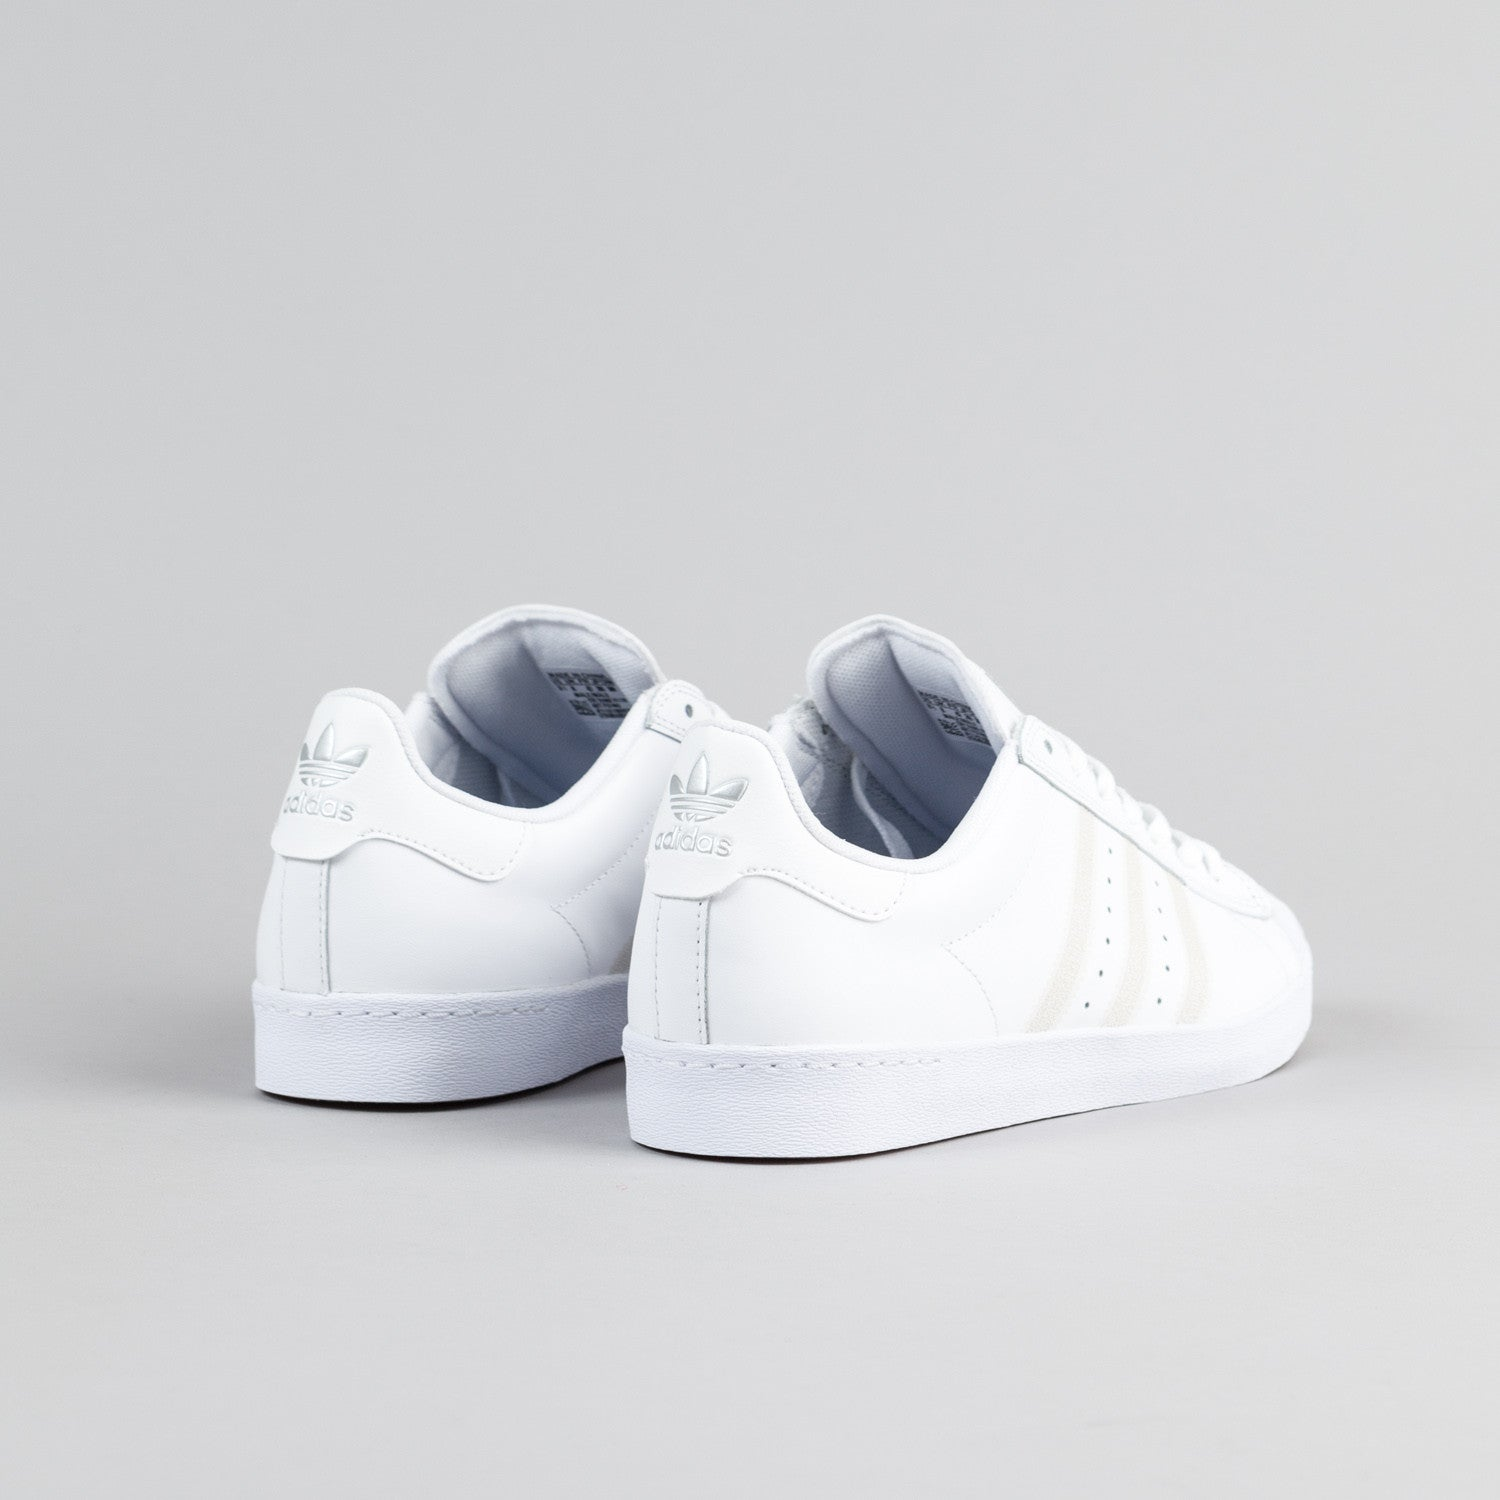 Adidas Superstar Vulc Adv Black White Hers trainers Office Shoes